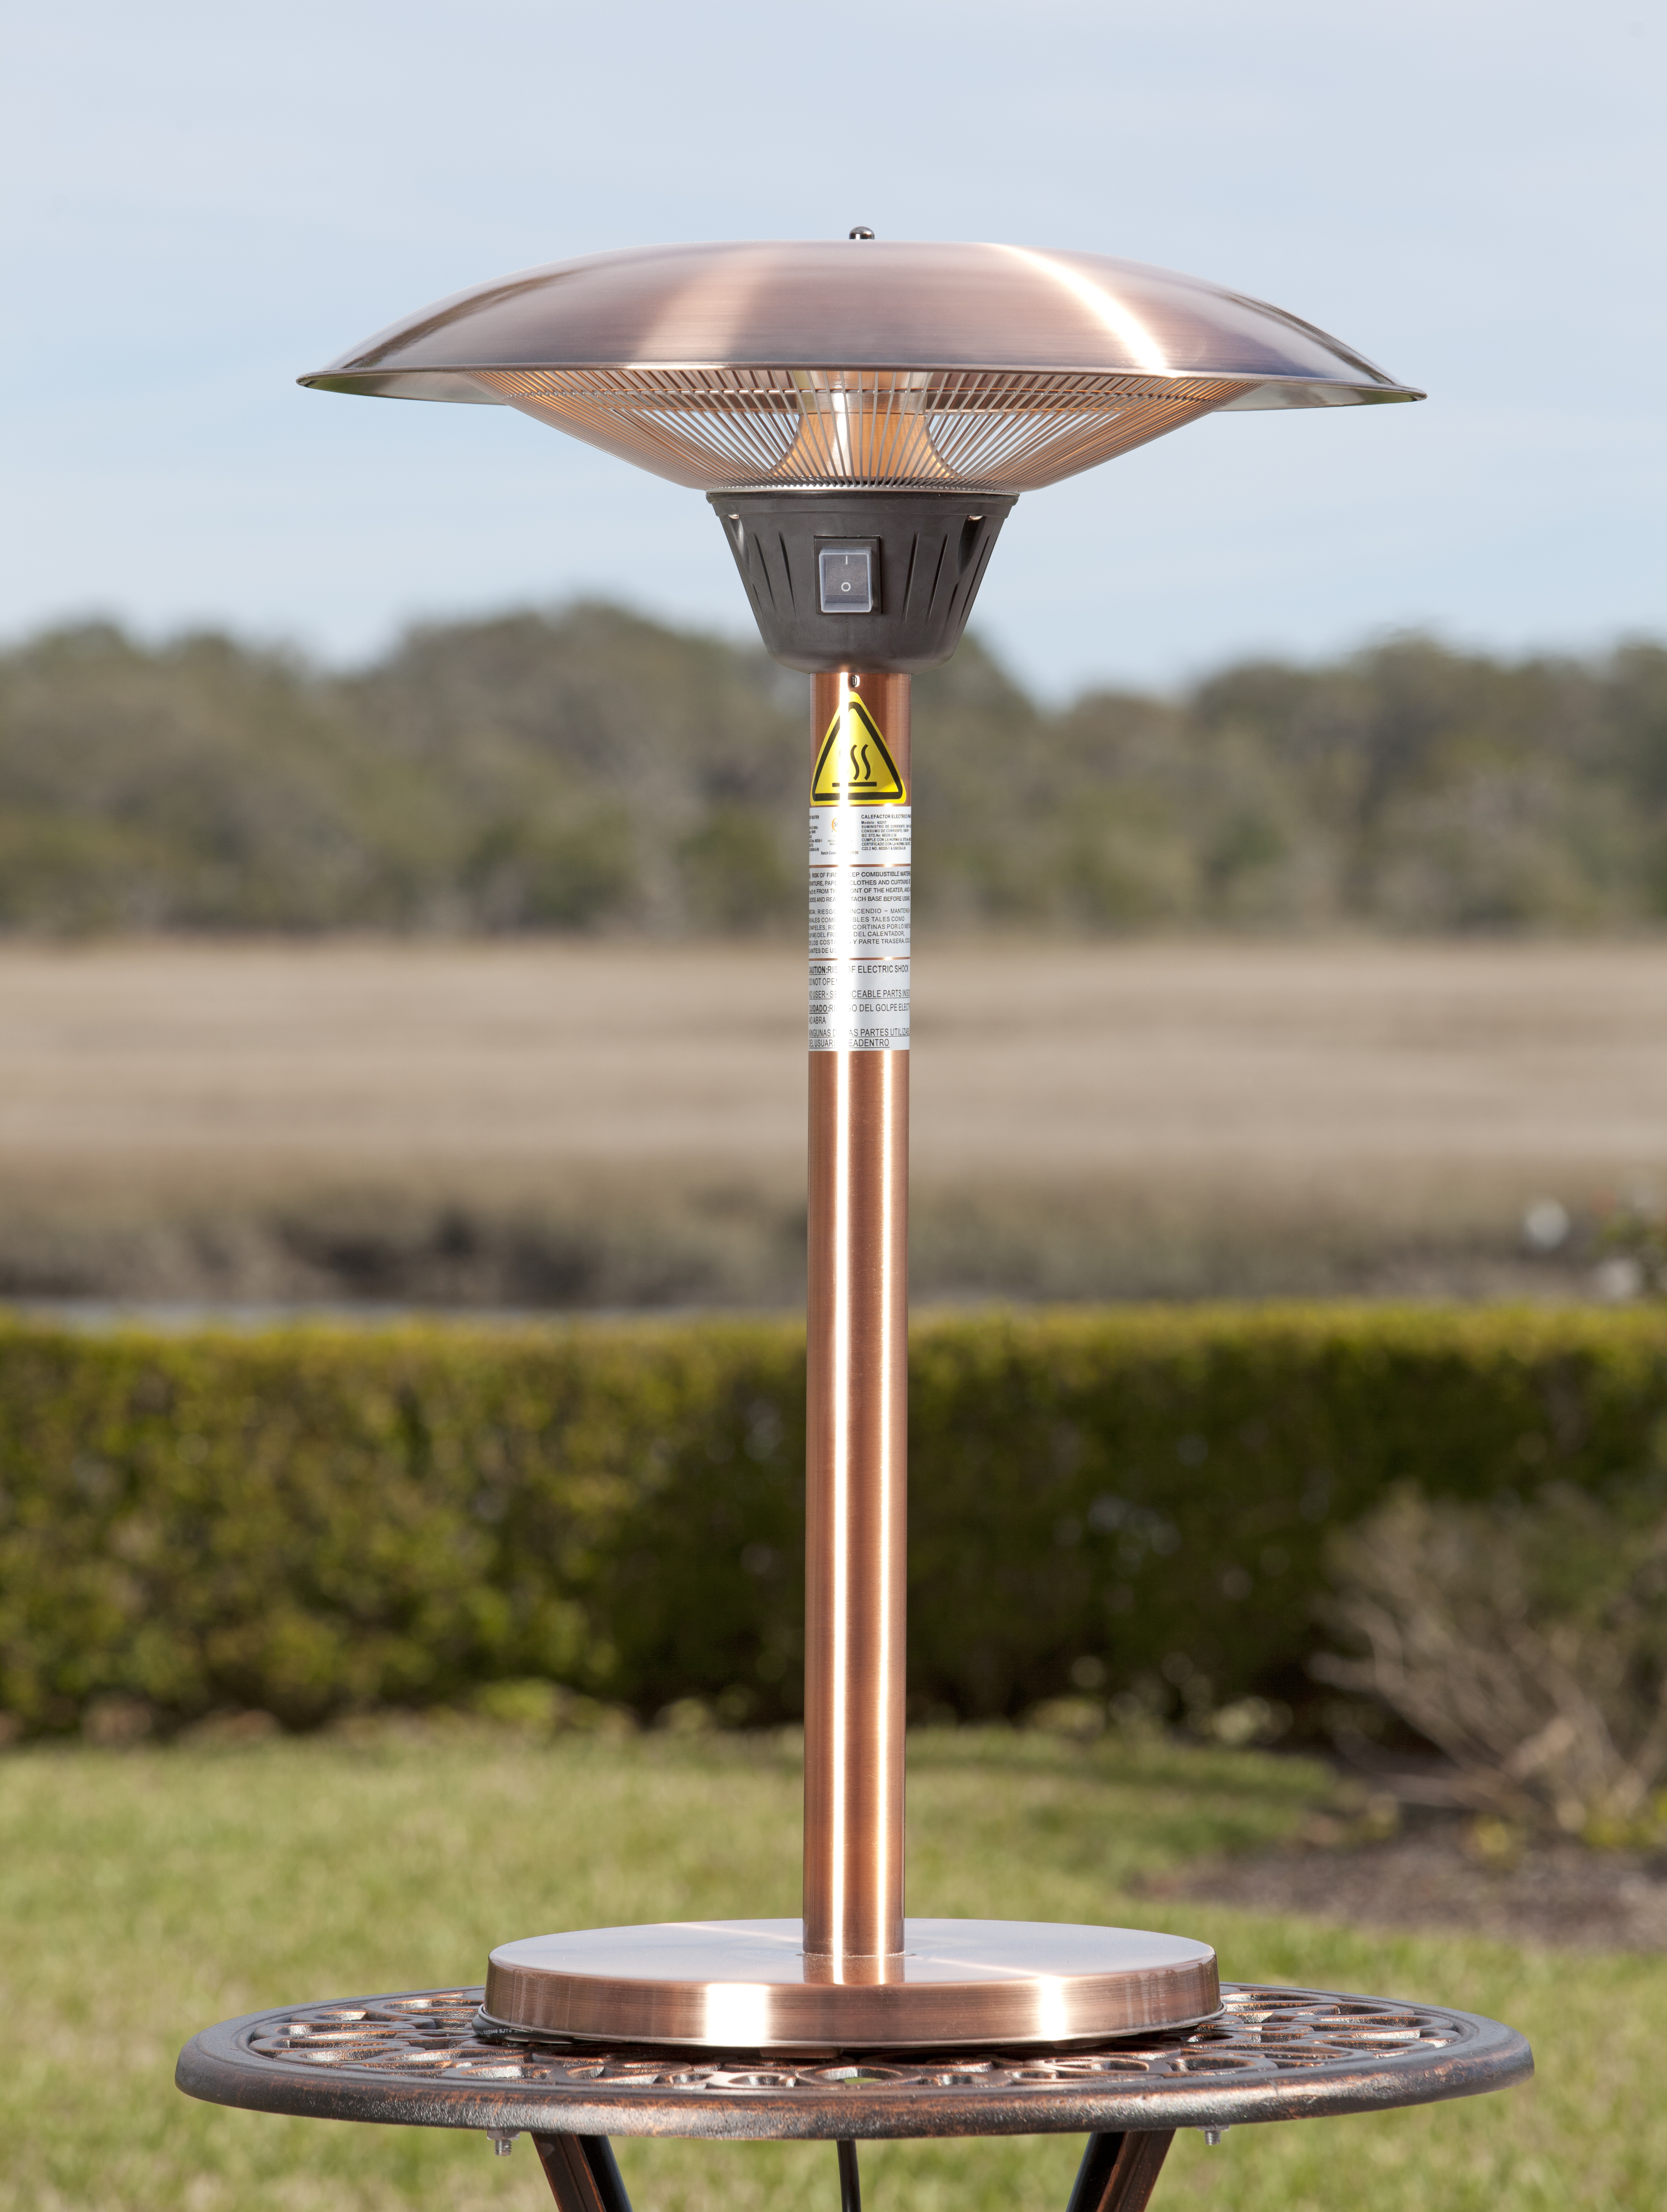 Firefly Electric Tabletop Patio Heater - Patio Ideas